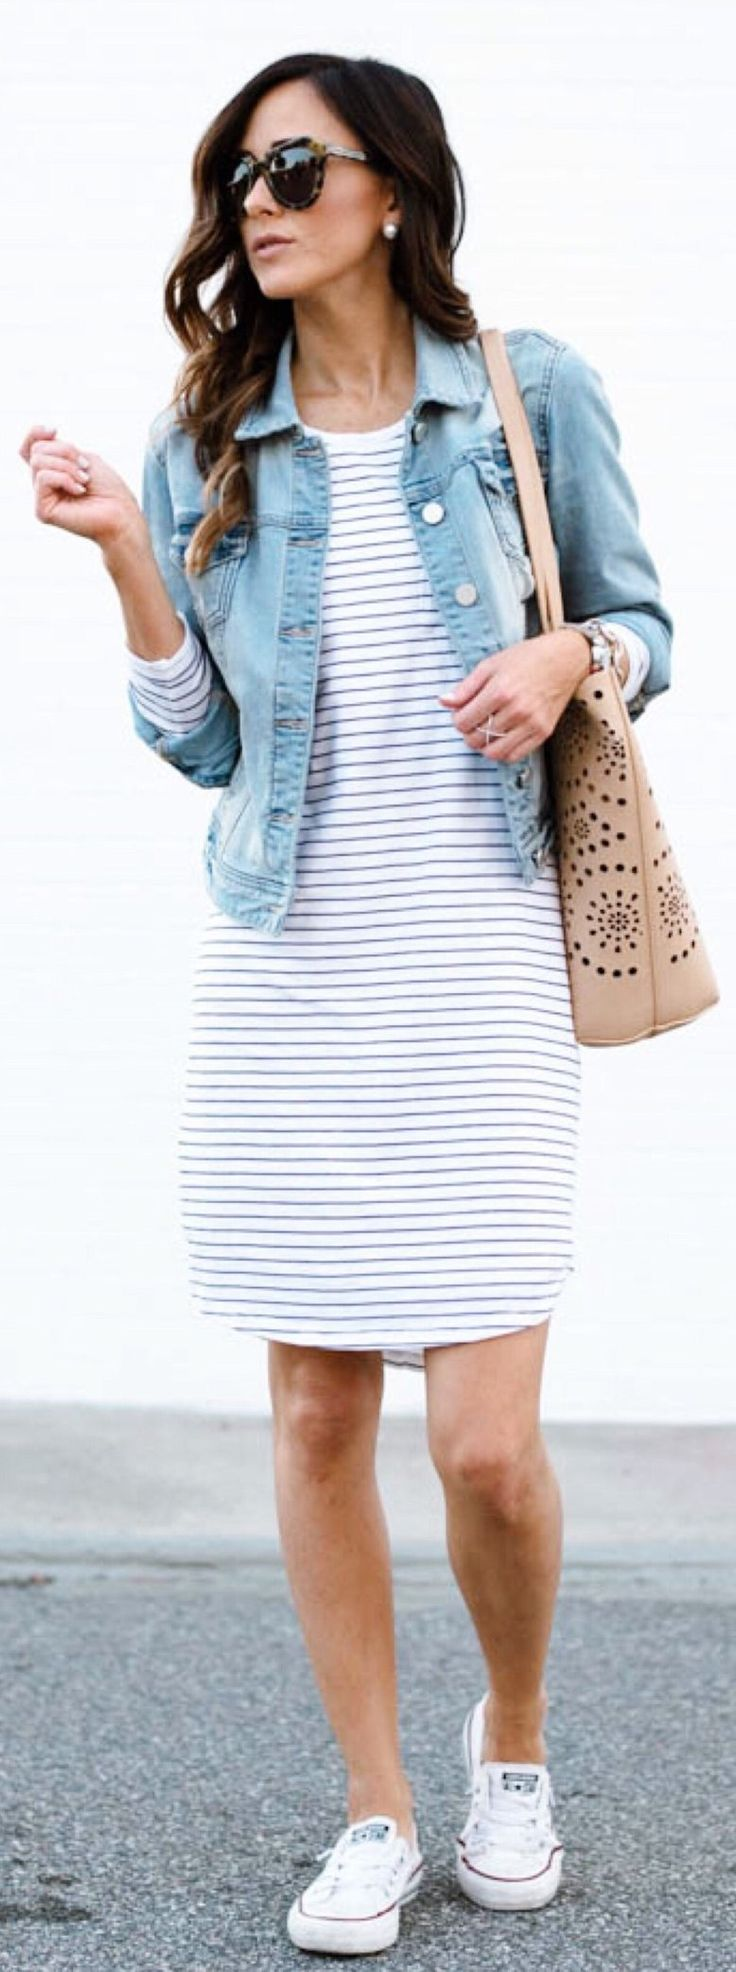 Denim Jacket / White Striped Dress / White Sneakers                                                                             Source